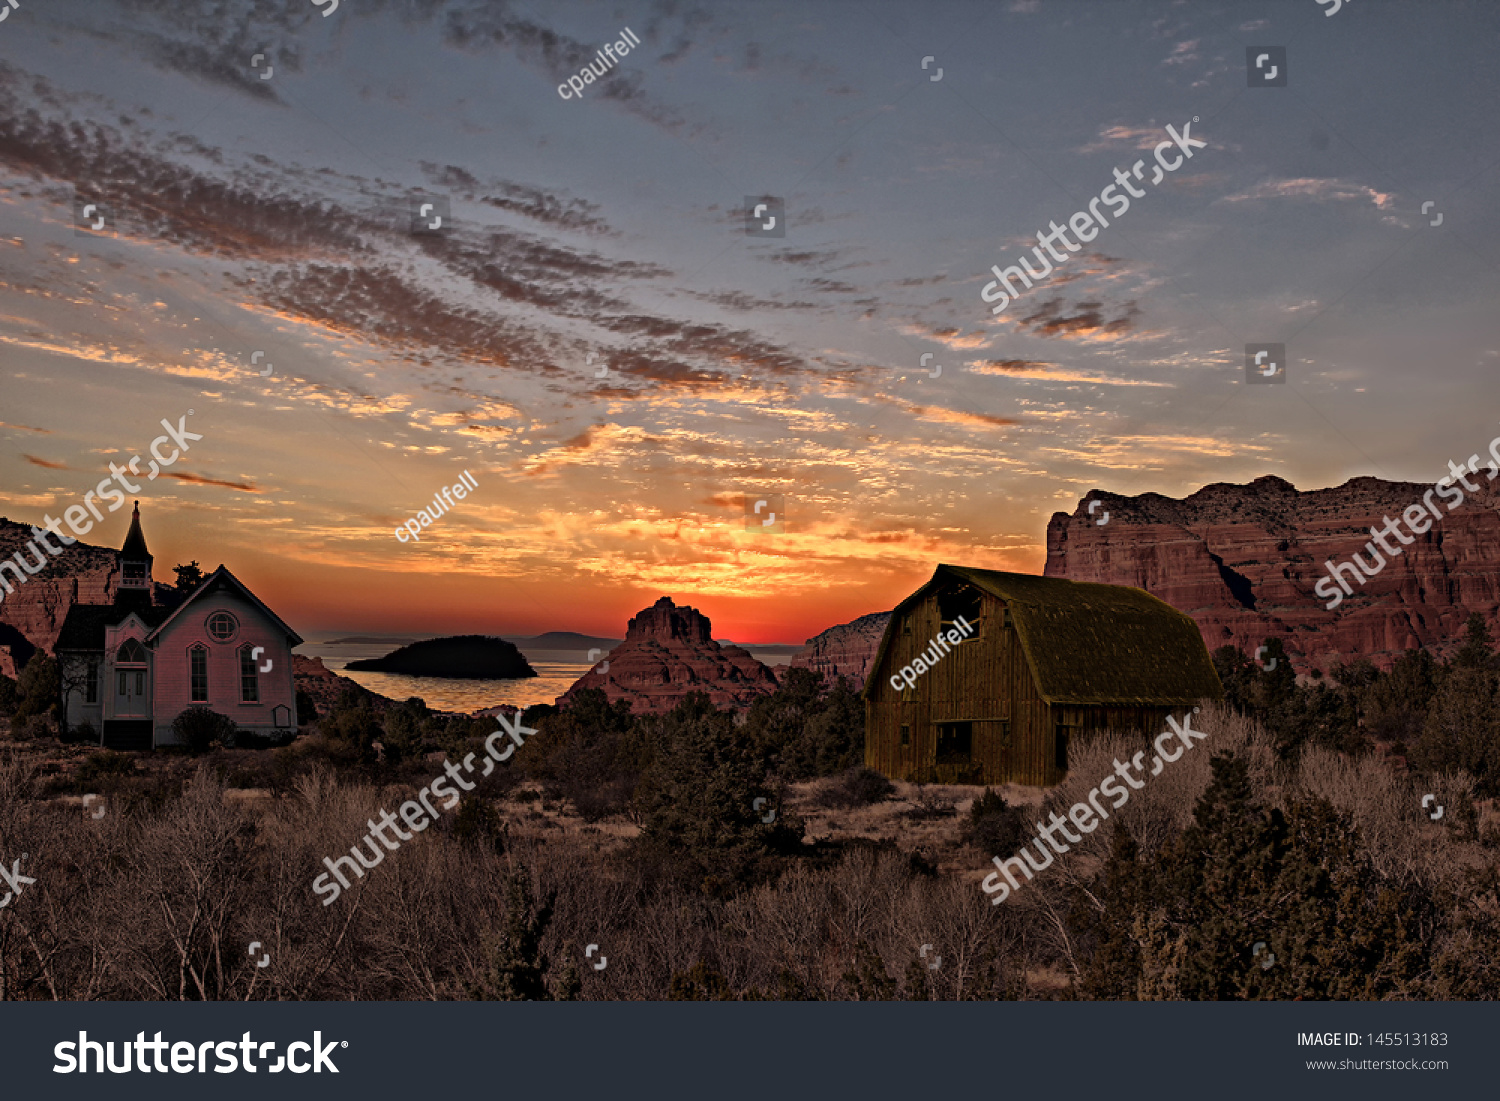 stock-photo-beautiful-scene-with-old-chu